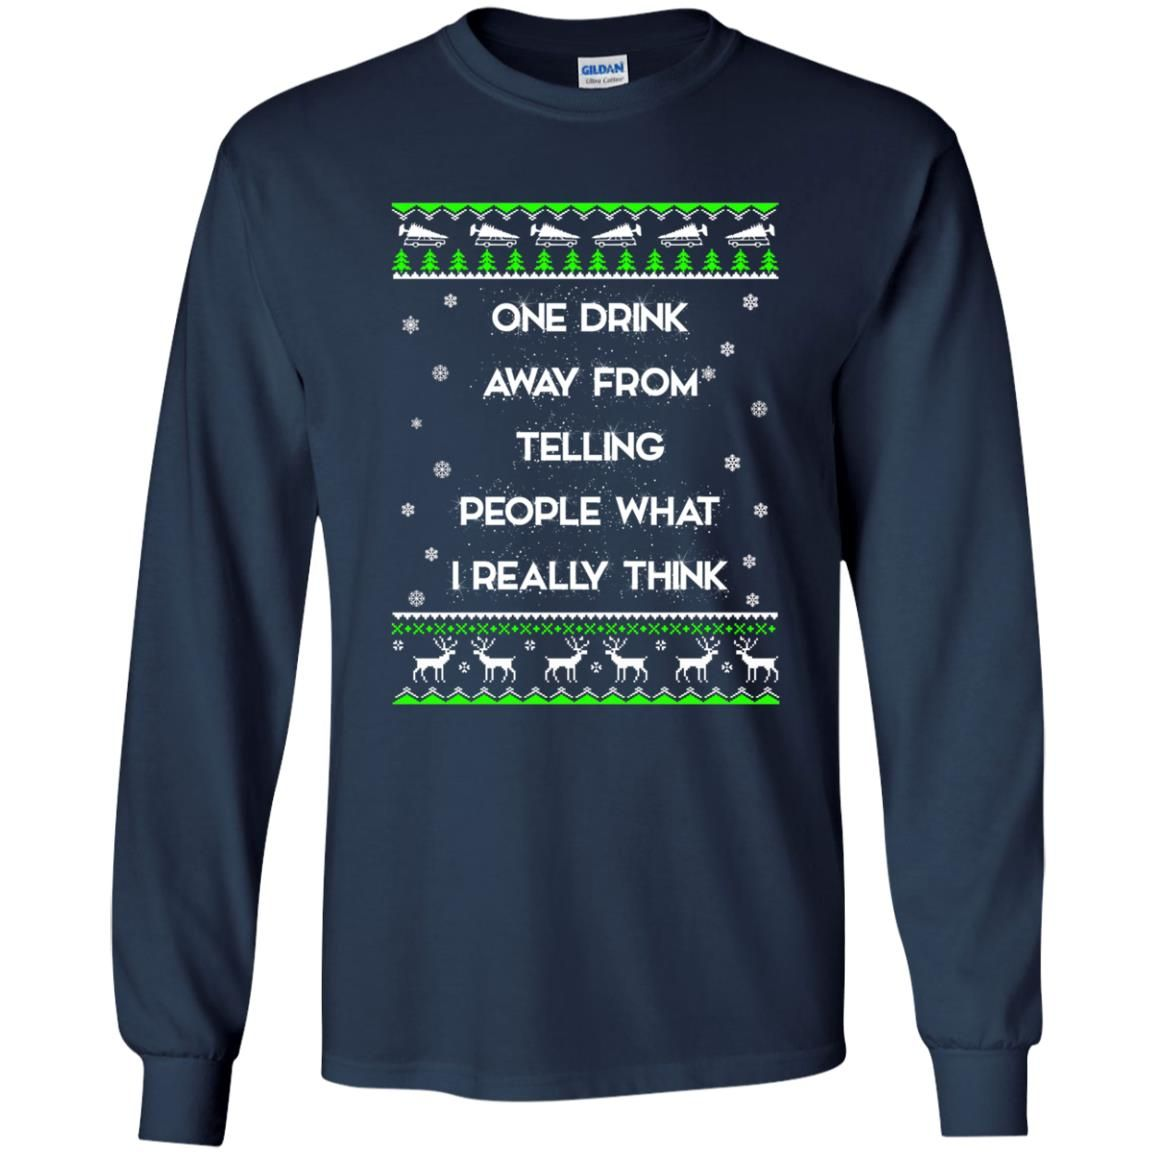 image 1554 - One drink away from telling people what I really think ugly Christmas sweater, hoodie